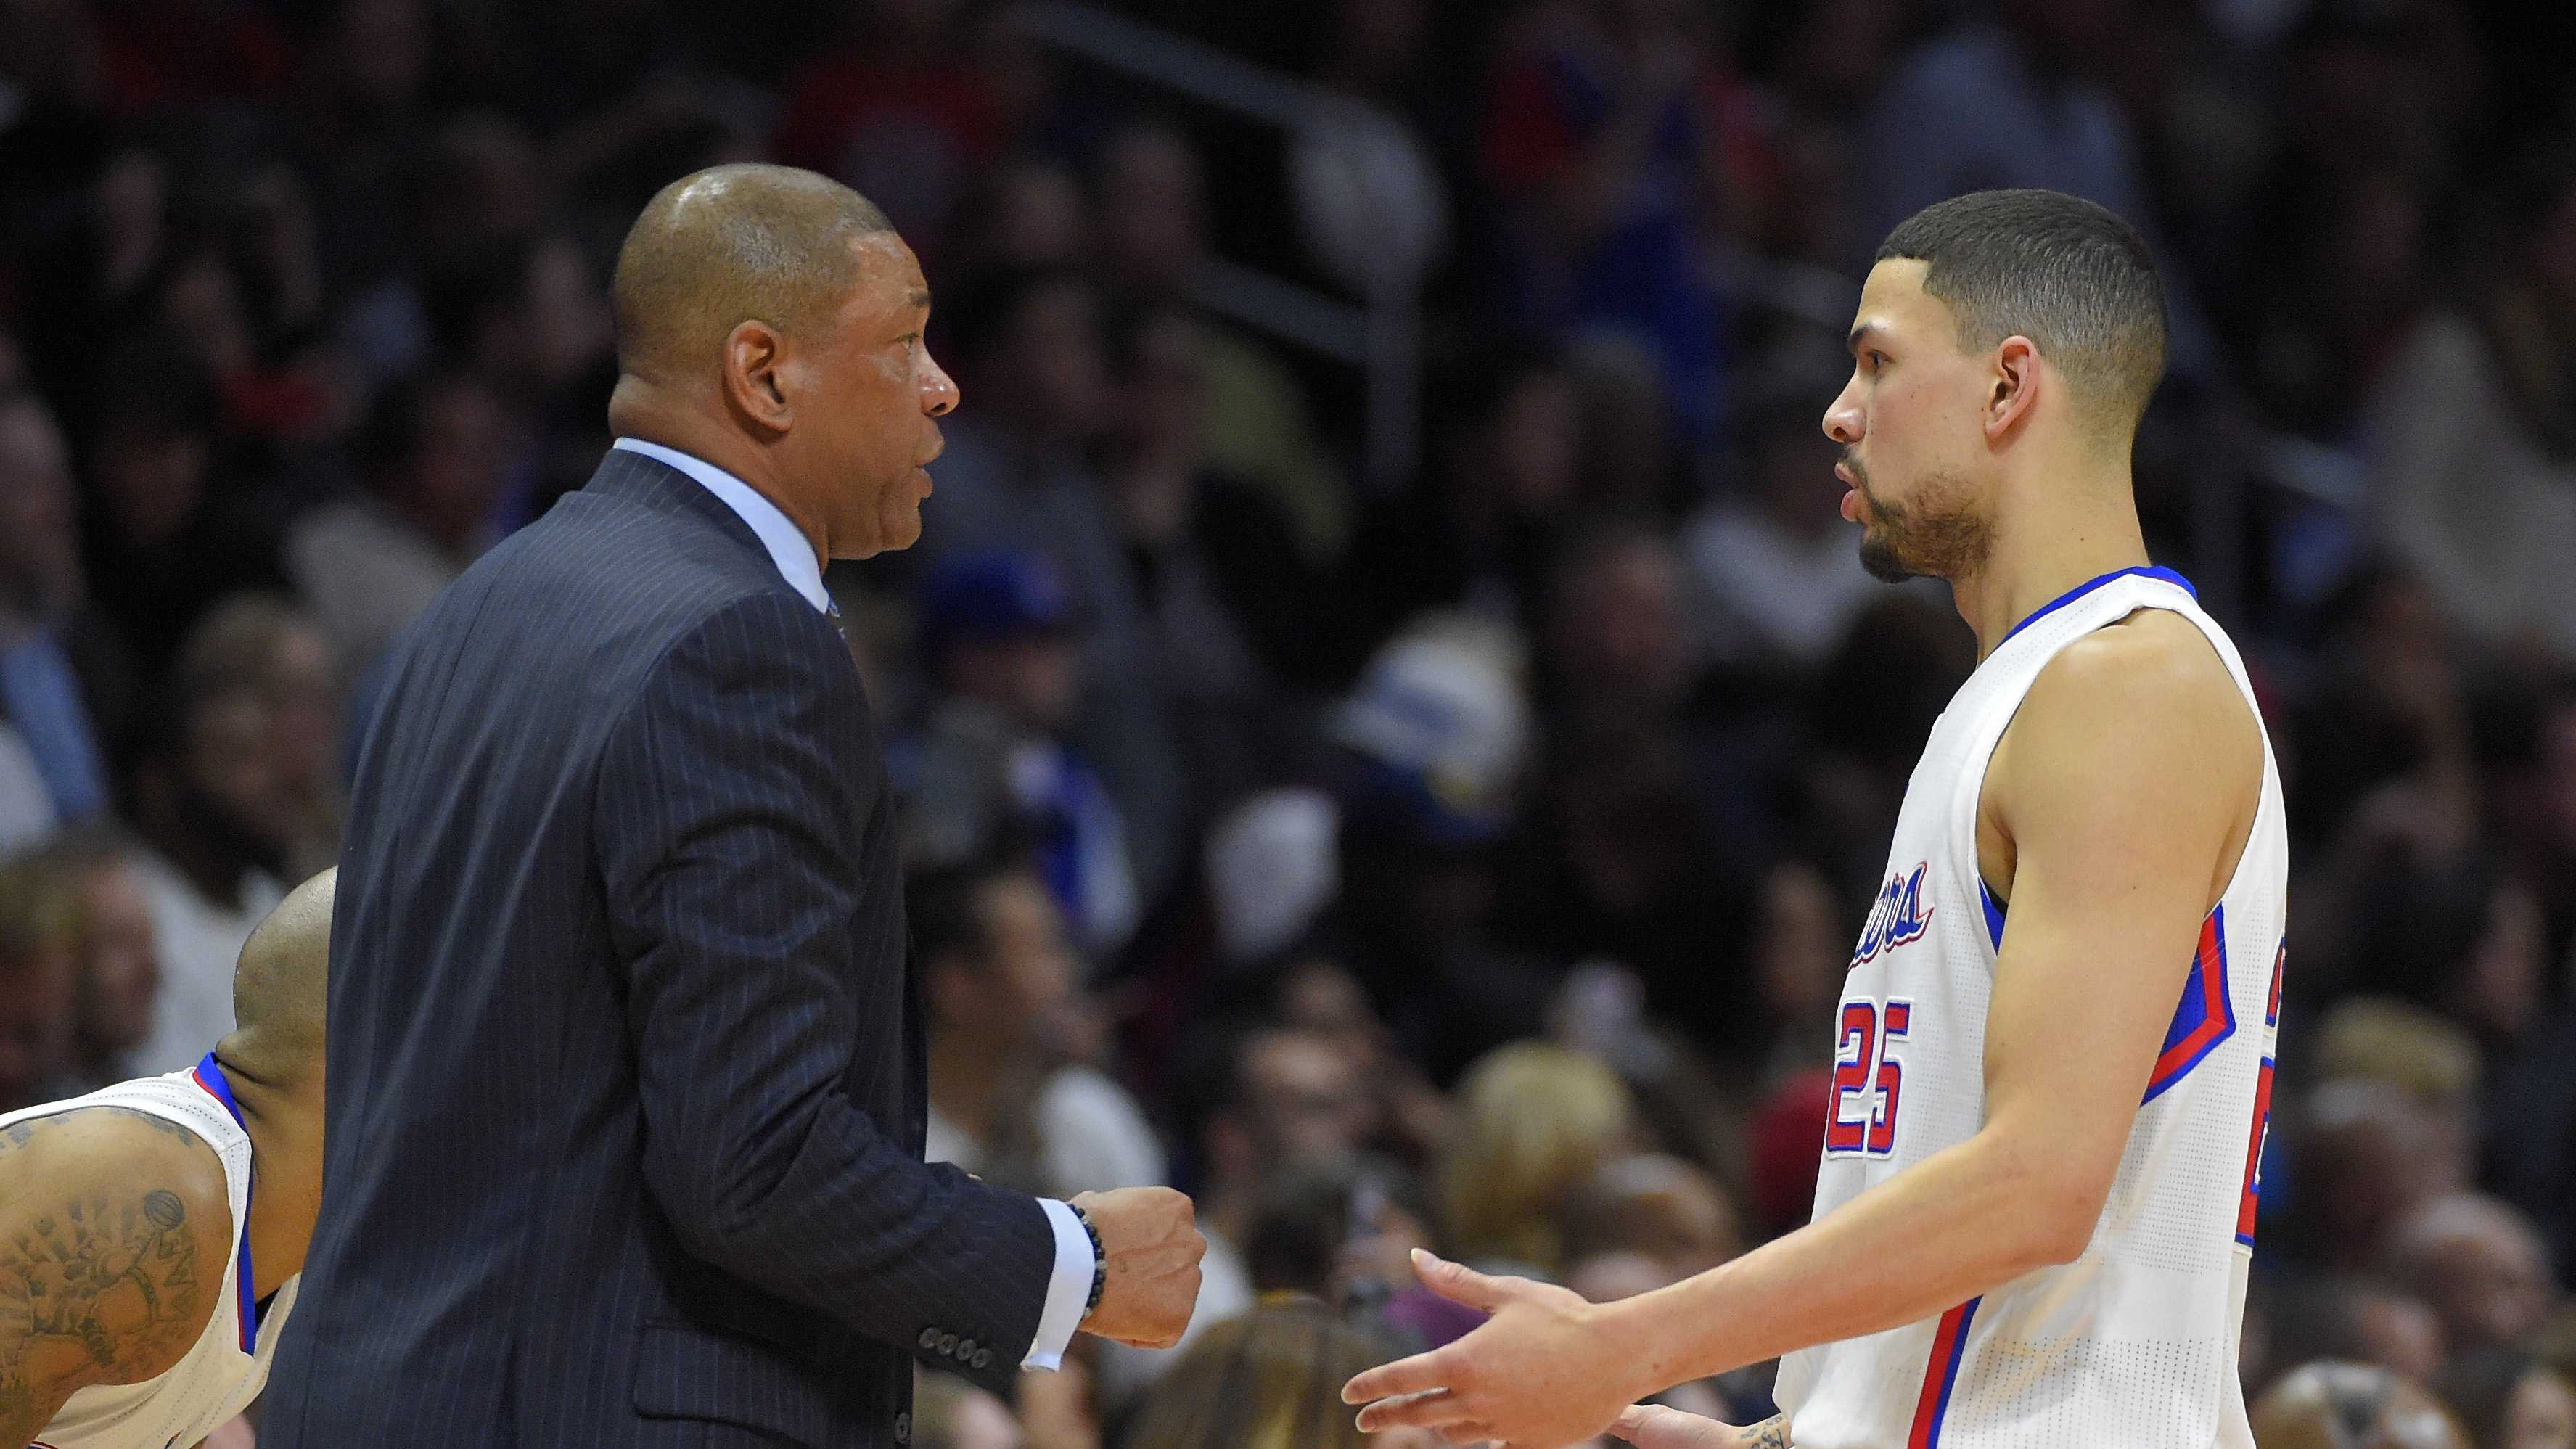 Los Angeles Clippers guard Austin Rivers, right, talks with his father, Clippers coach Doc Rivers, as he comes out of the NBA basketball game during the first half against the Cleveland Cavaliers, Friday, Jan. 16, 2015, in Los Angeles.